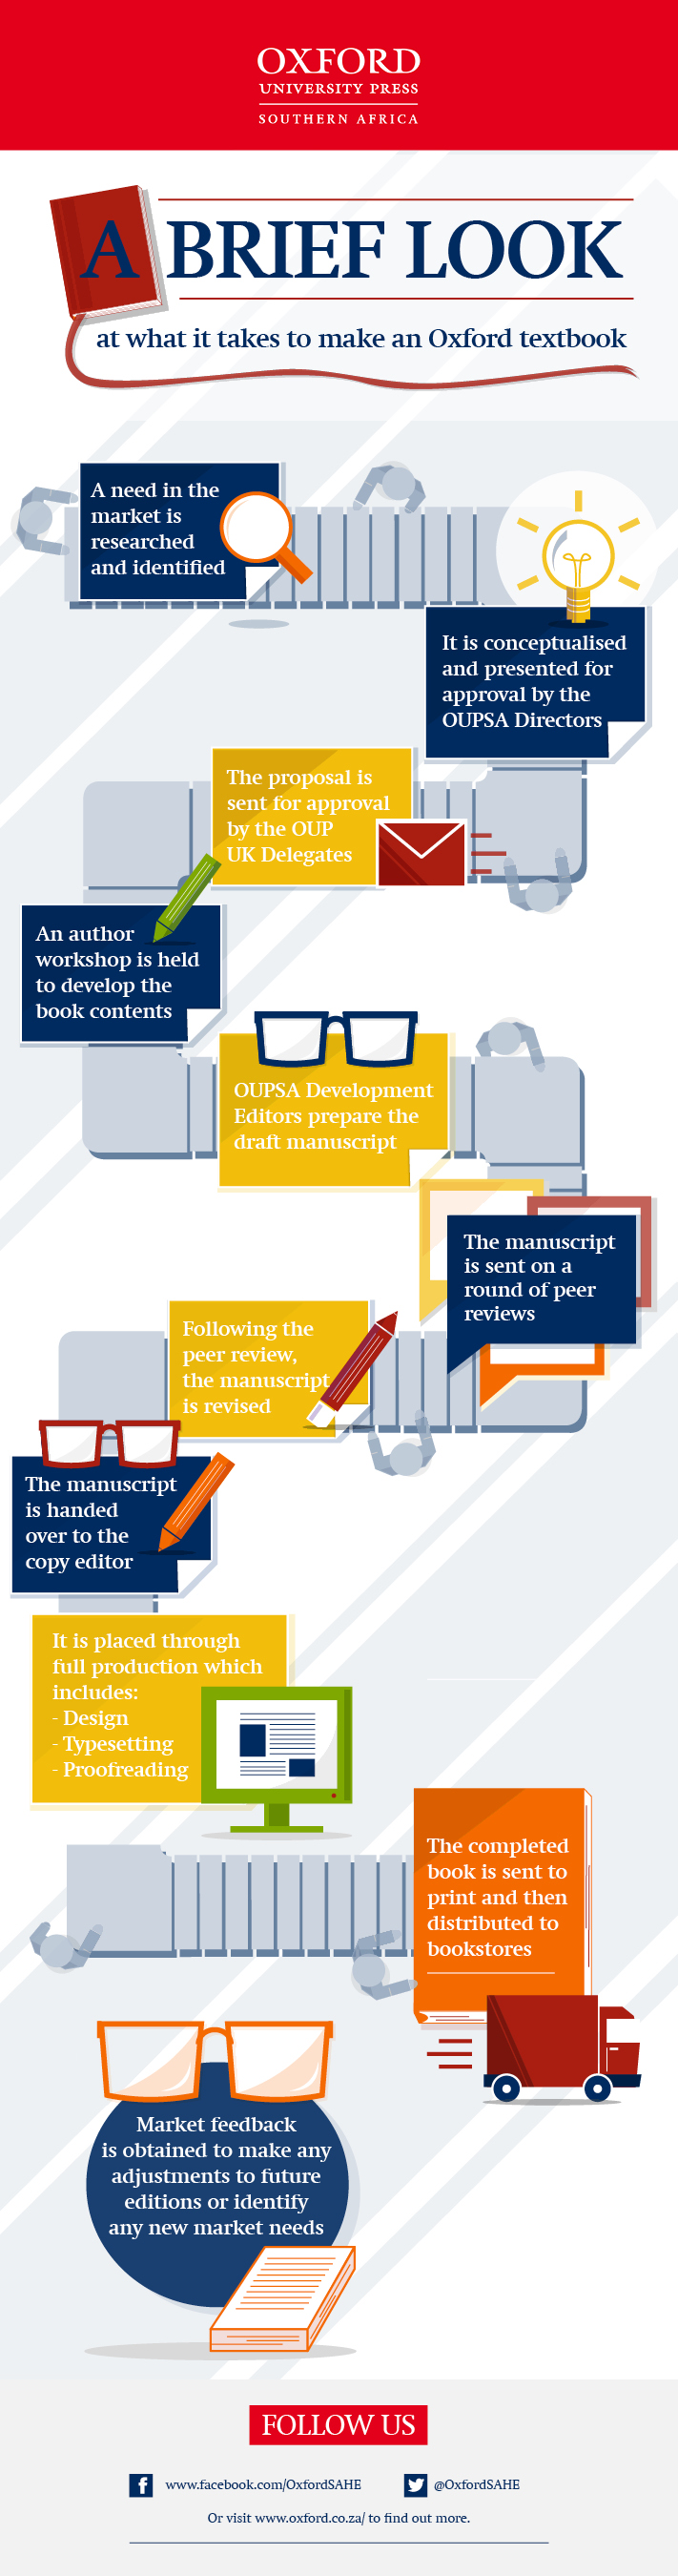 OUP PublishProcess Infographic